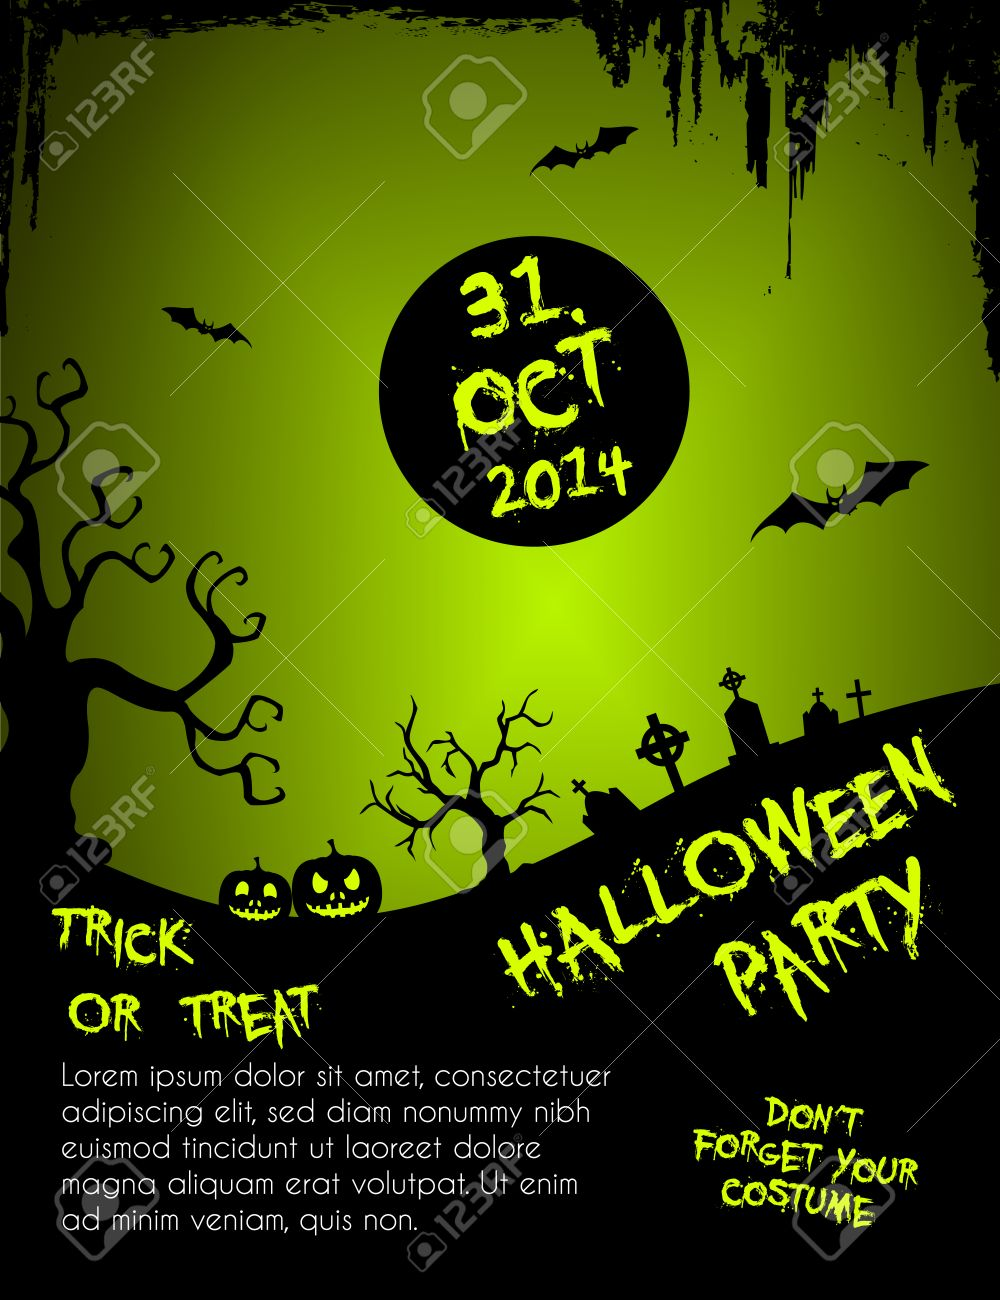 Halloween Party Flyer Template - Green And Black Royalty Free ...